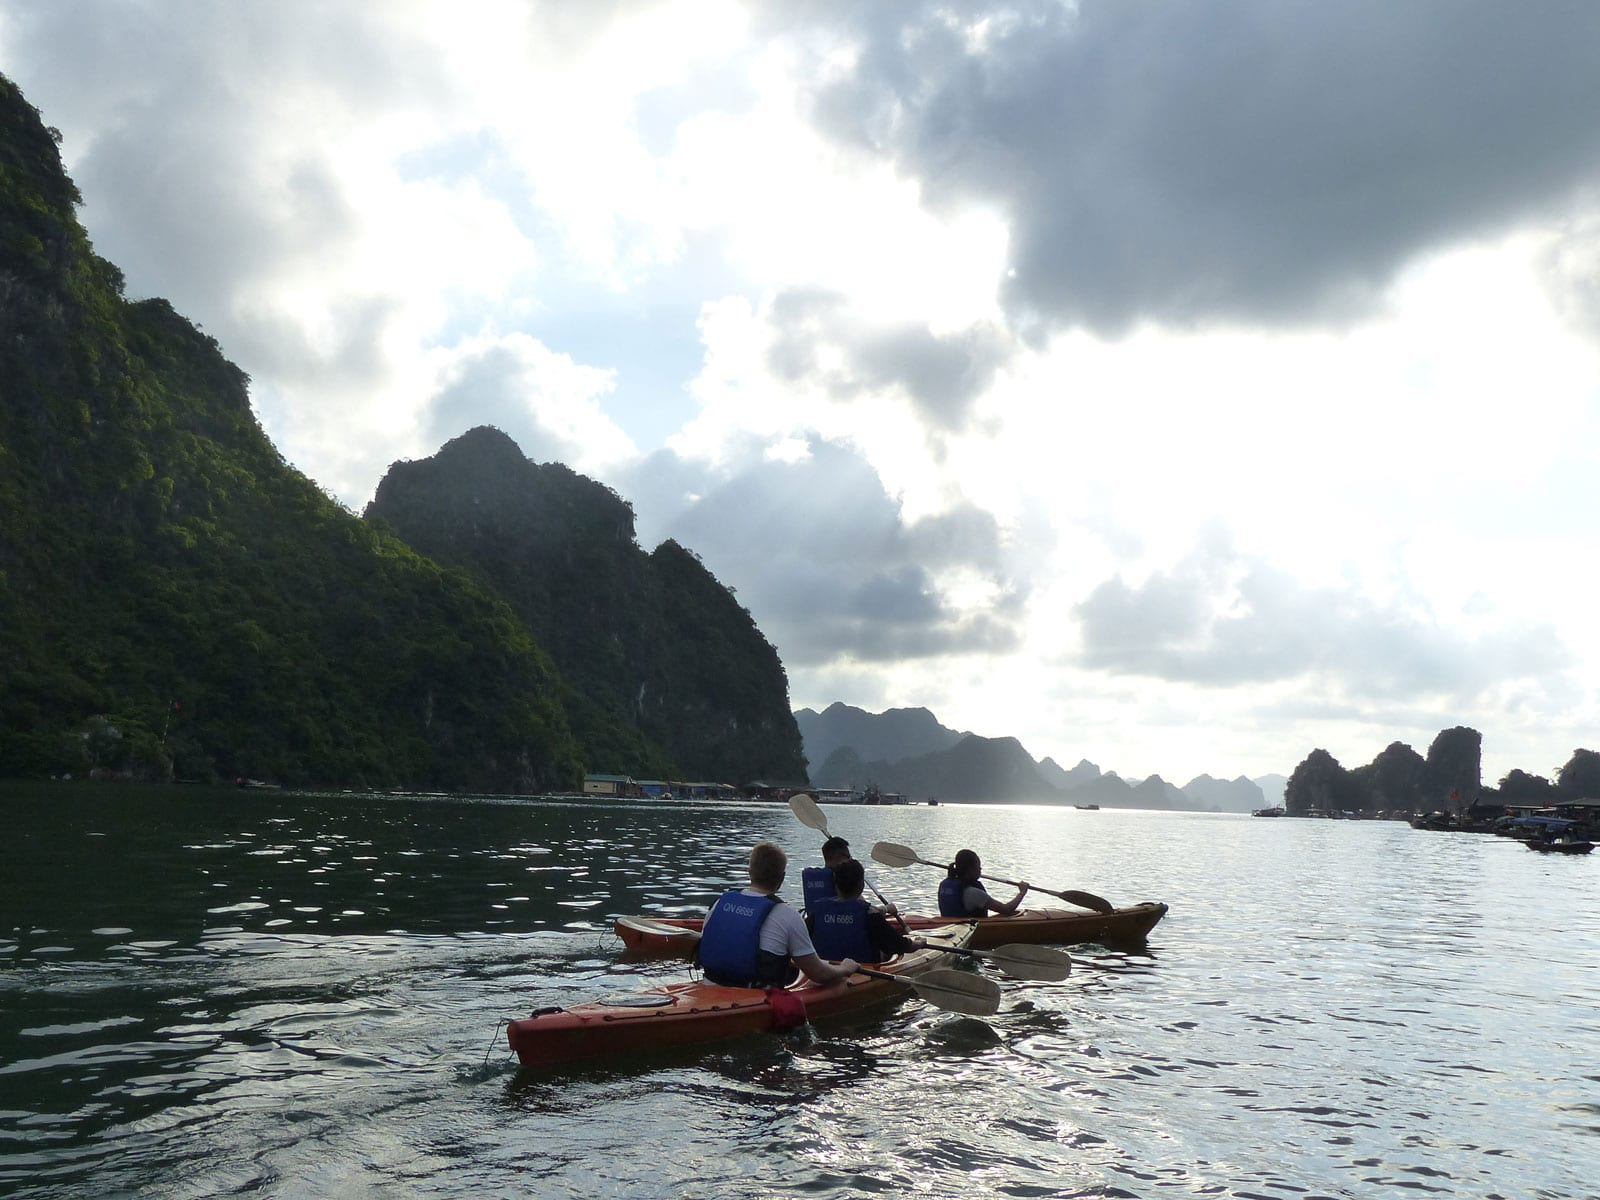 rondreis vietnam halong bay 9